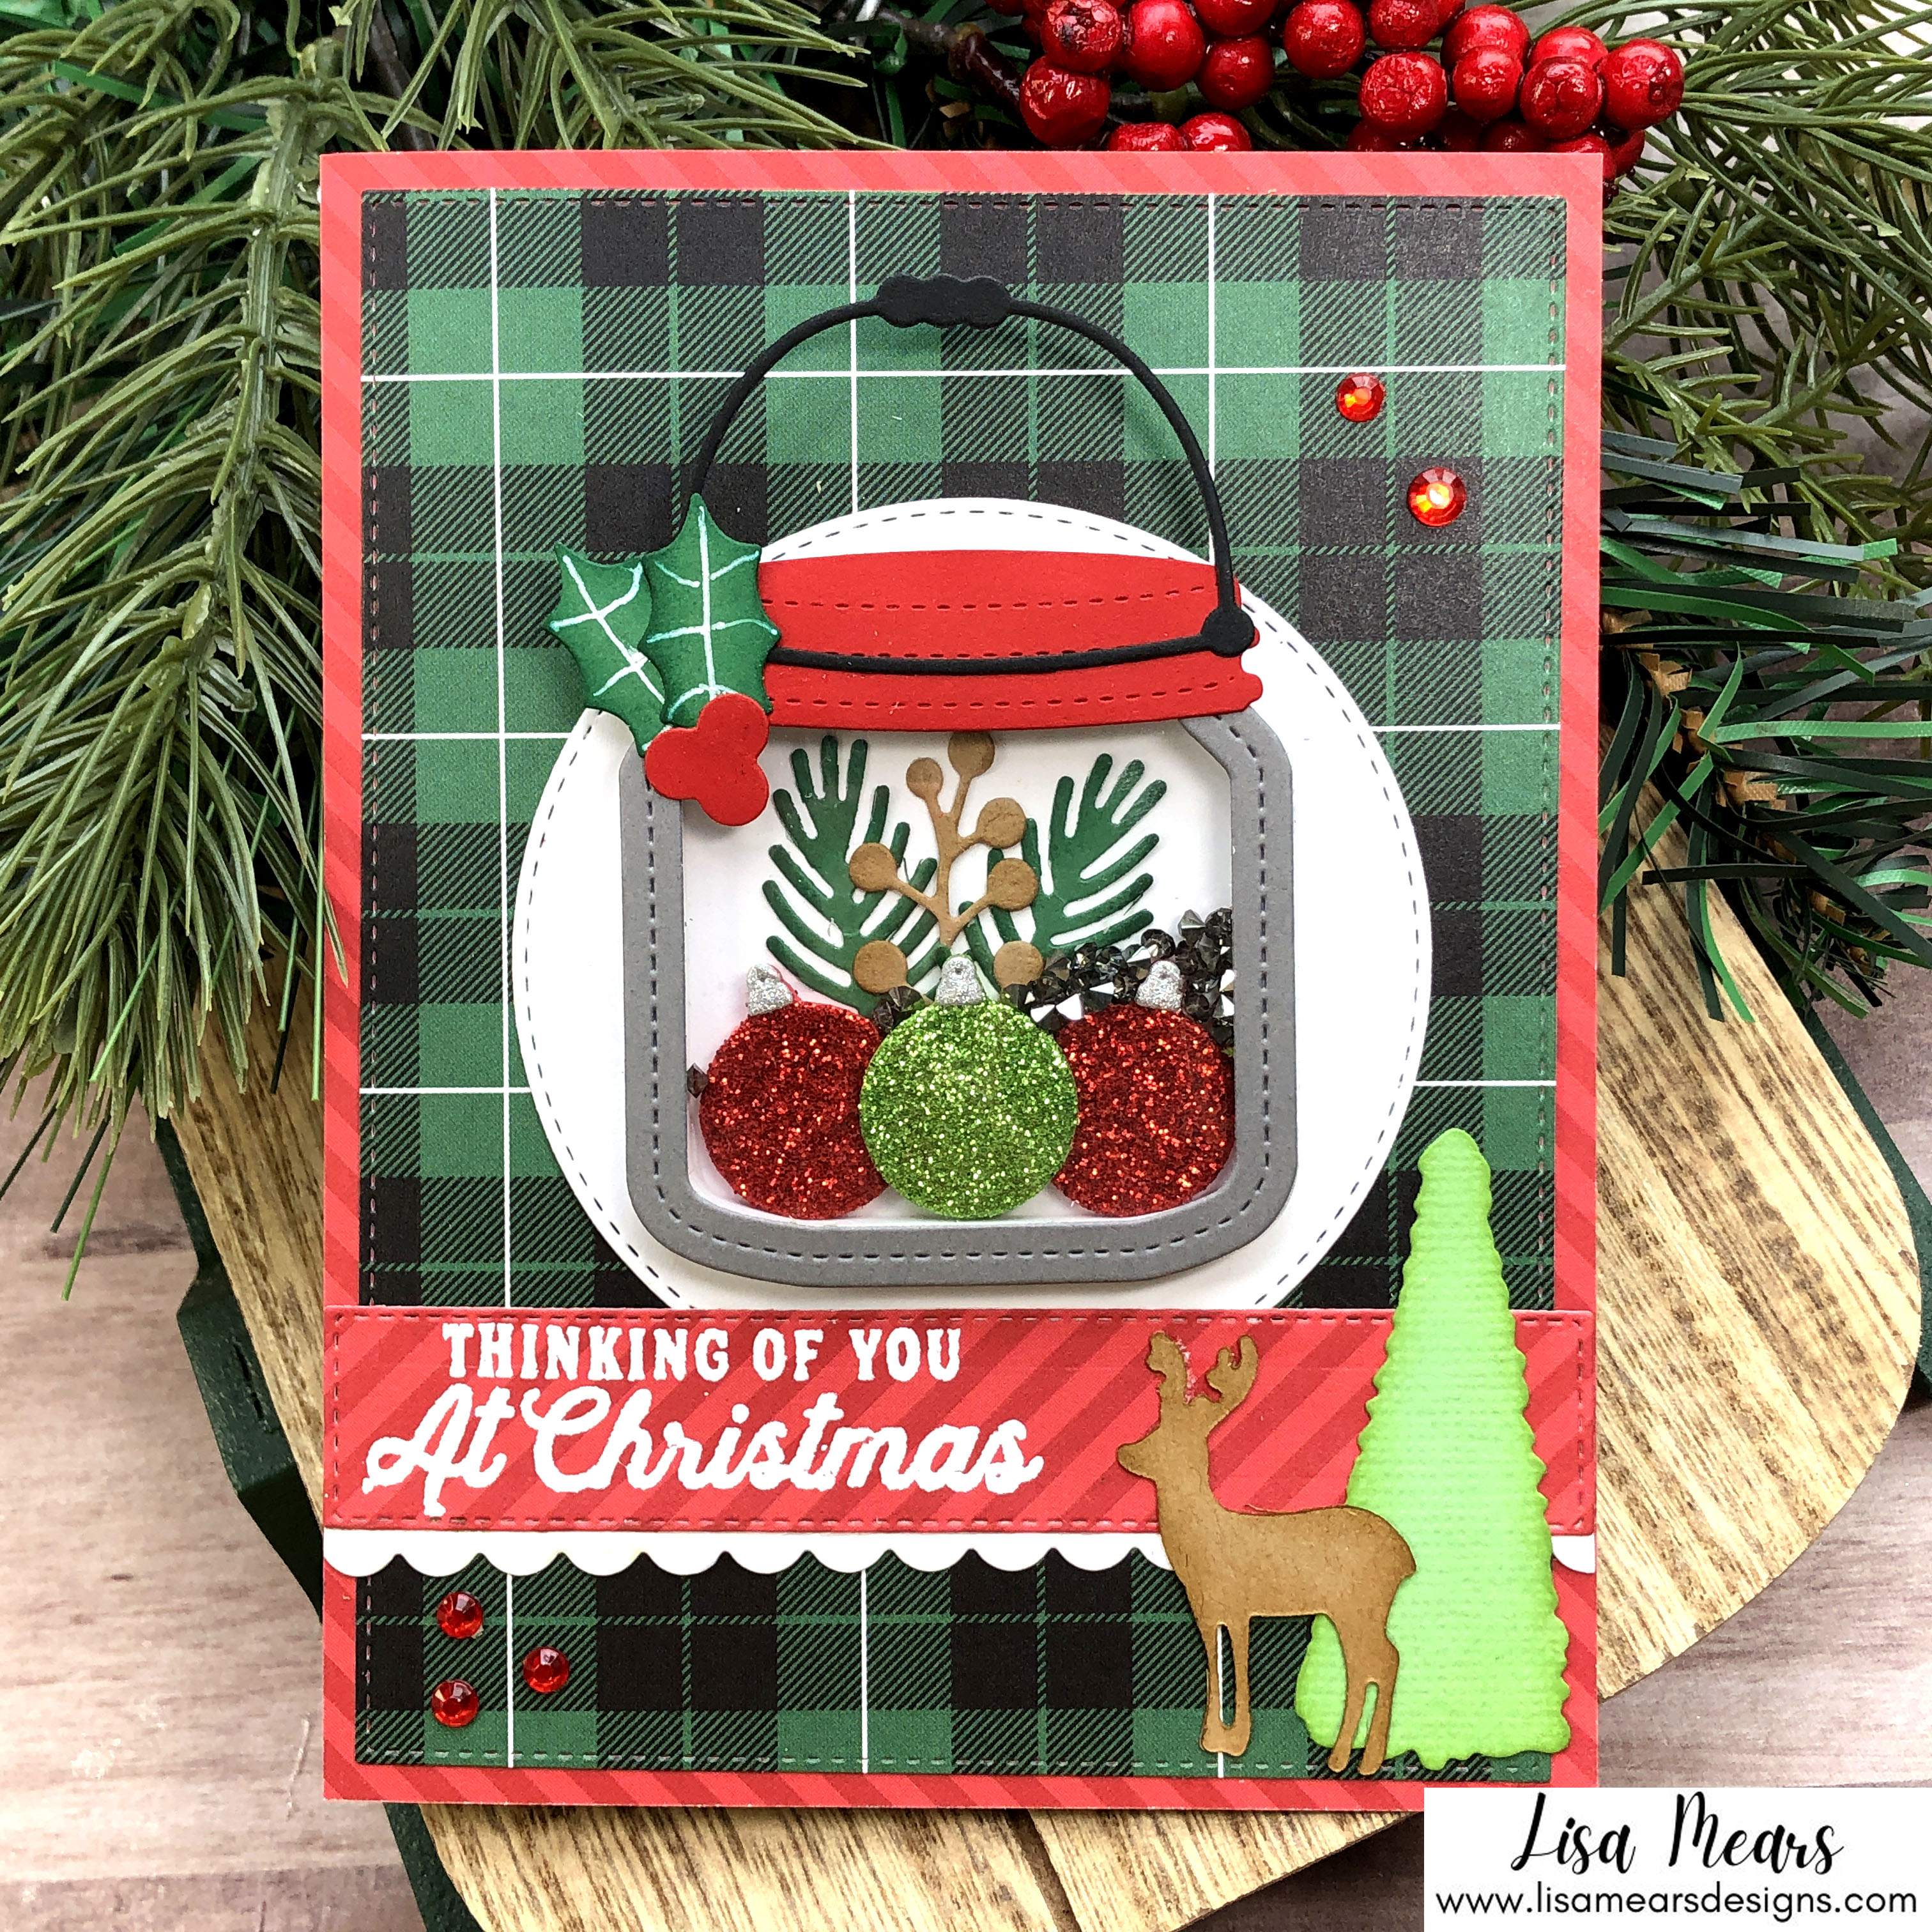 Queen & Co Holiday Jar Shaker Kit - 10 Cards 1 Kit - Christmas Shaker Card